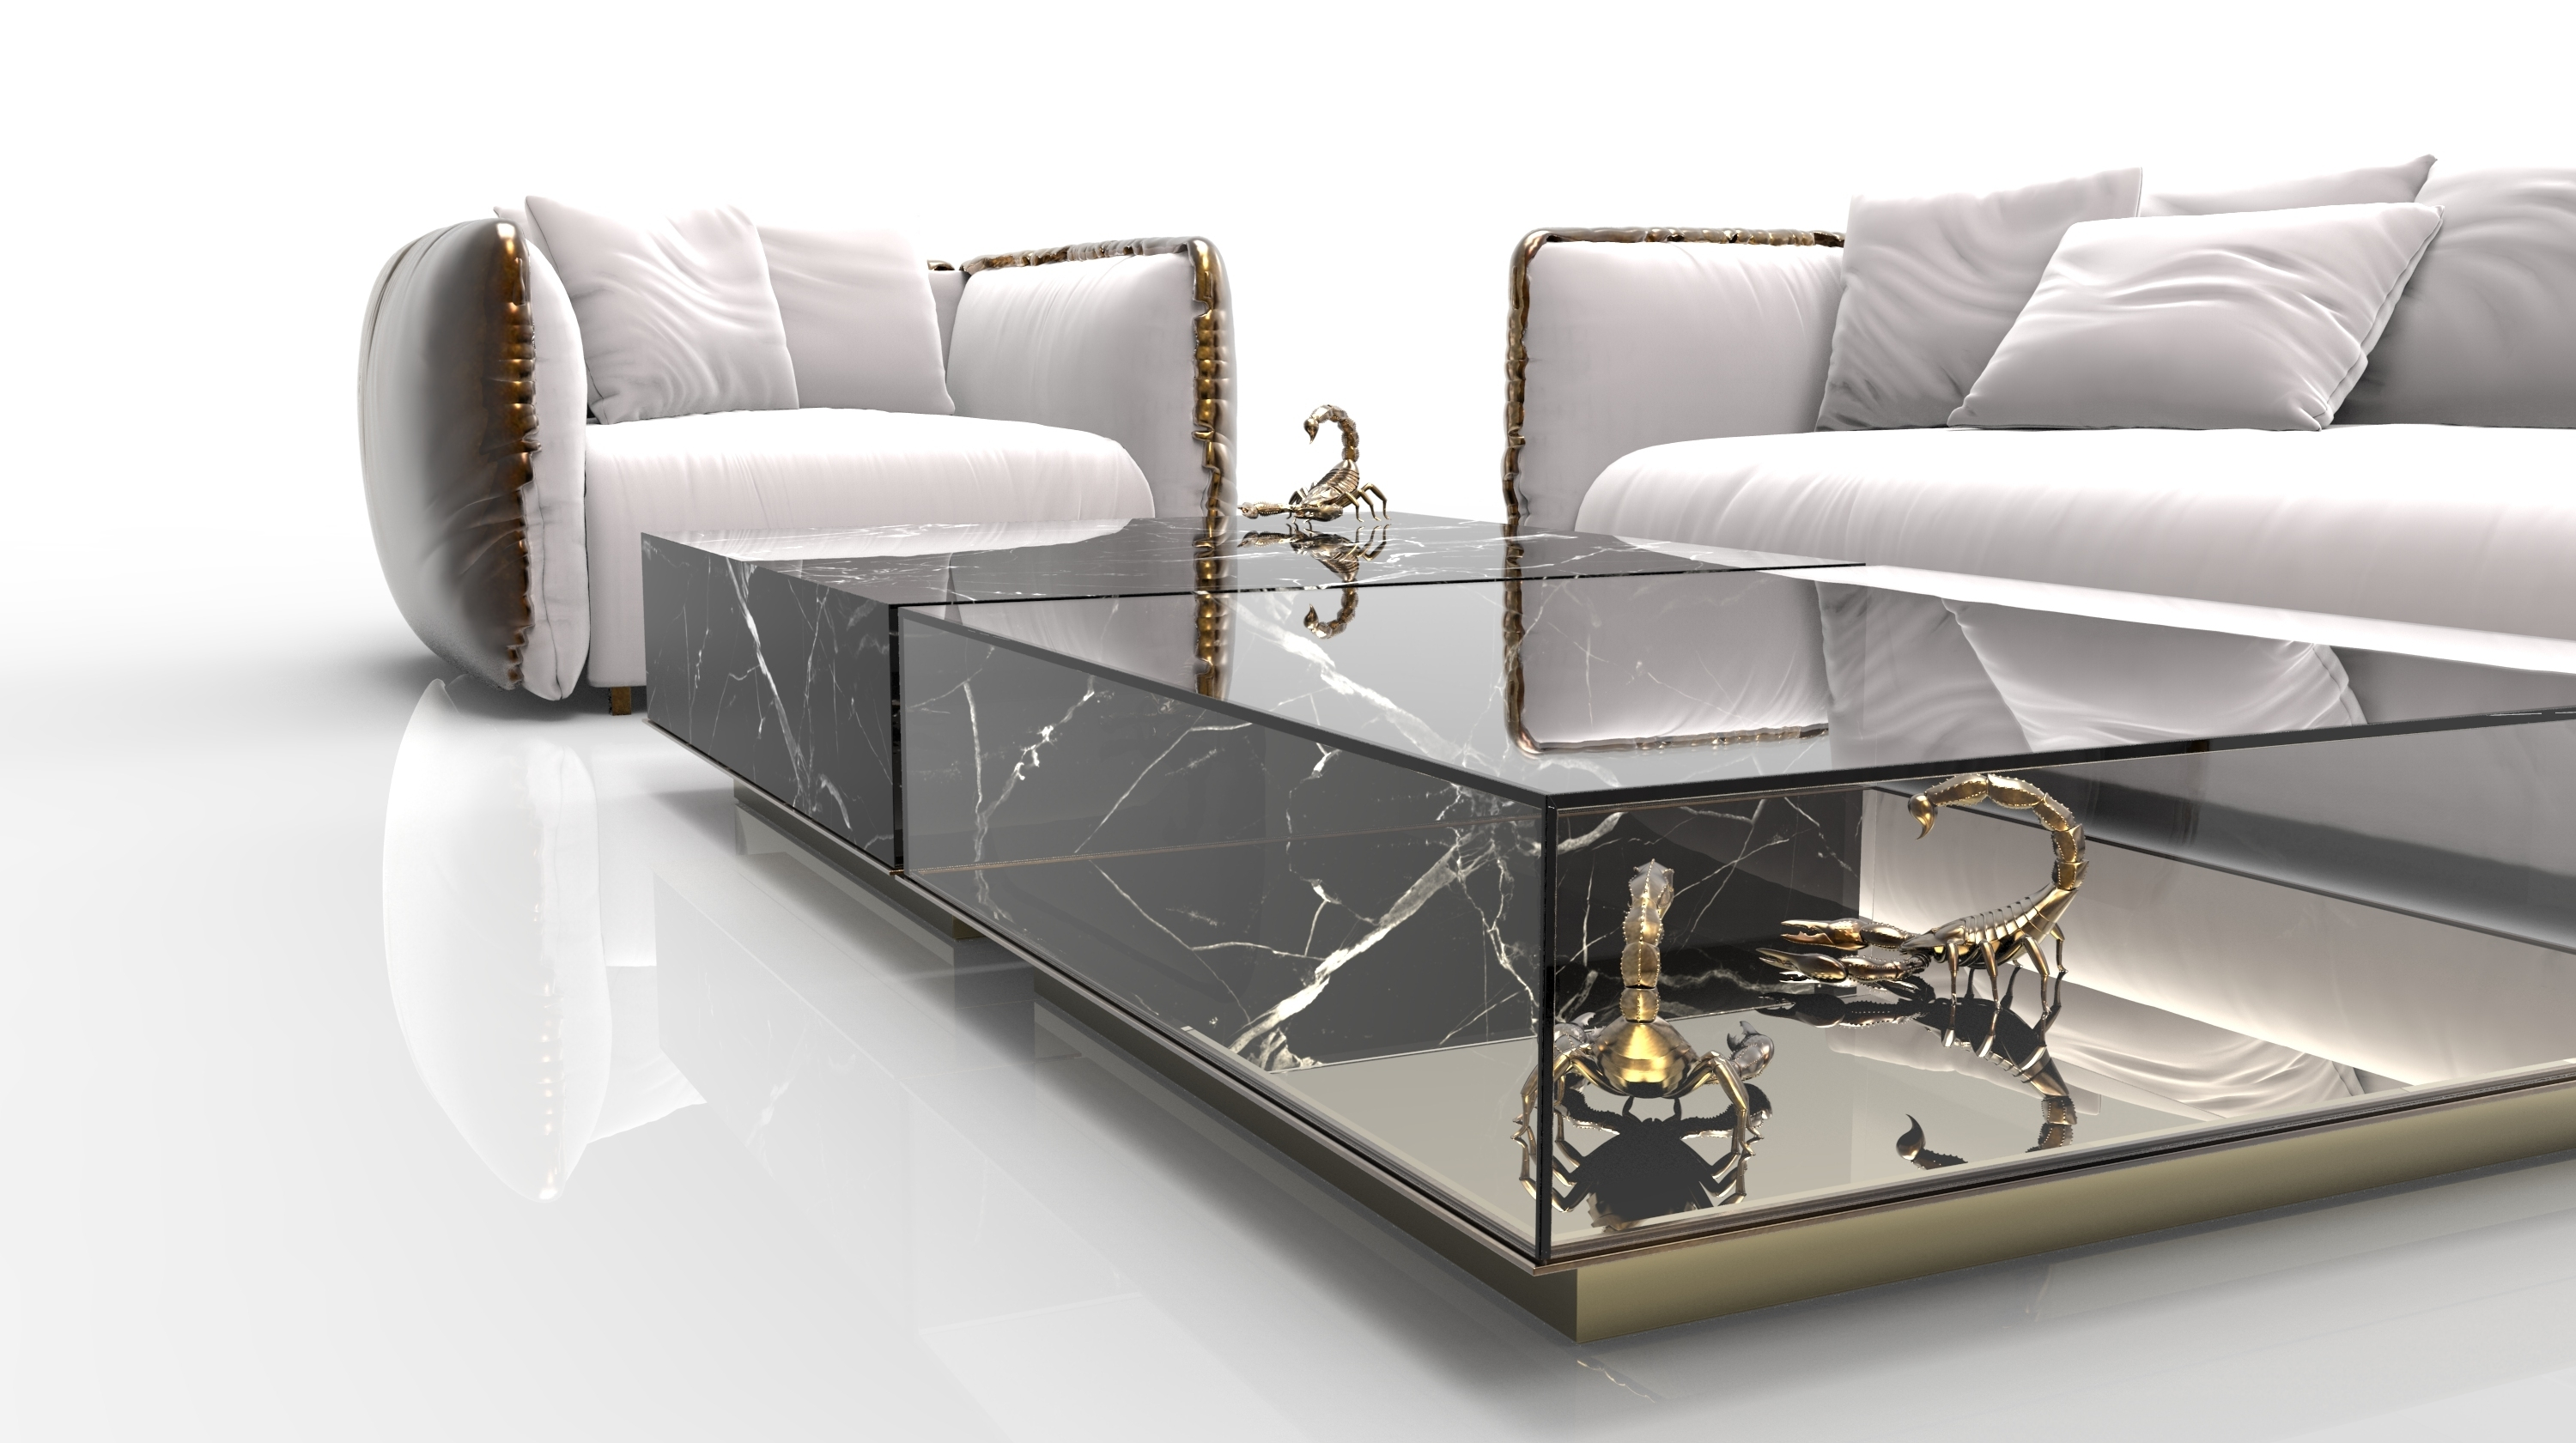 Marble Coffee And Side Table Designs On Home Interiors regarding 2 Tone Grey And White Marble Coffee Tables (Image 17 of 30)